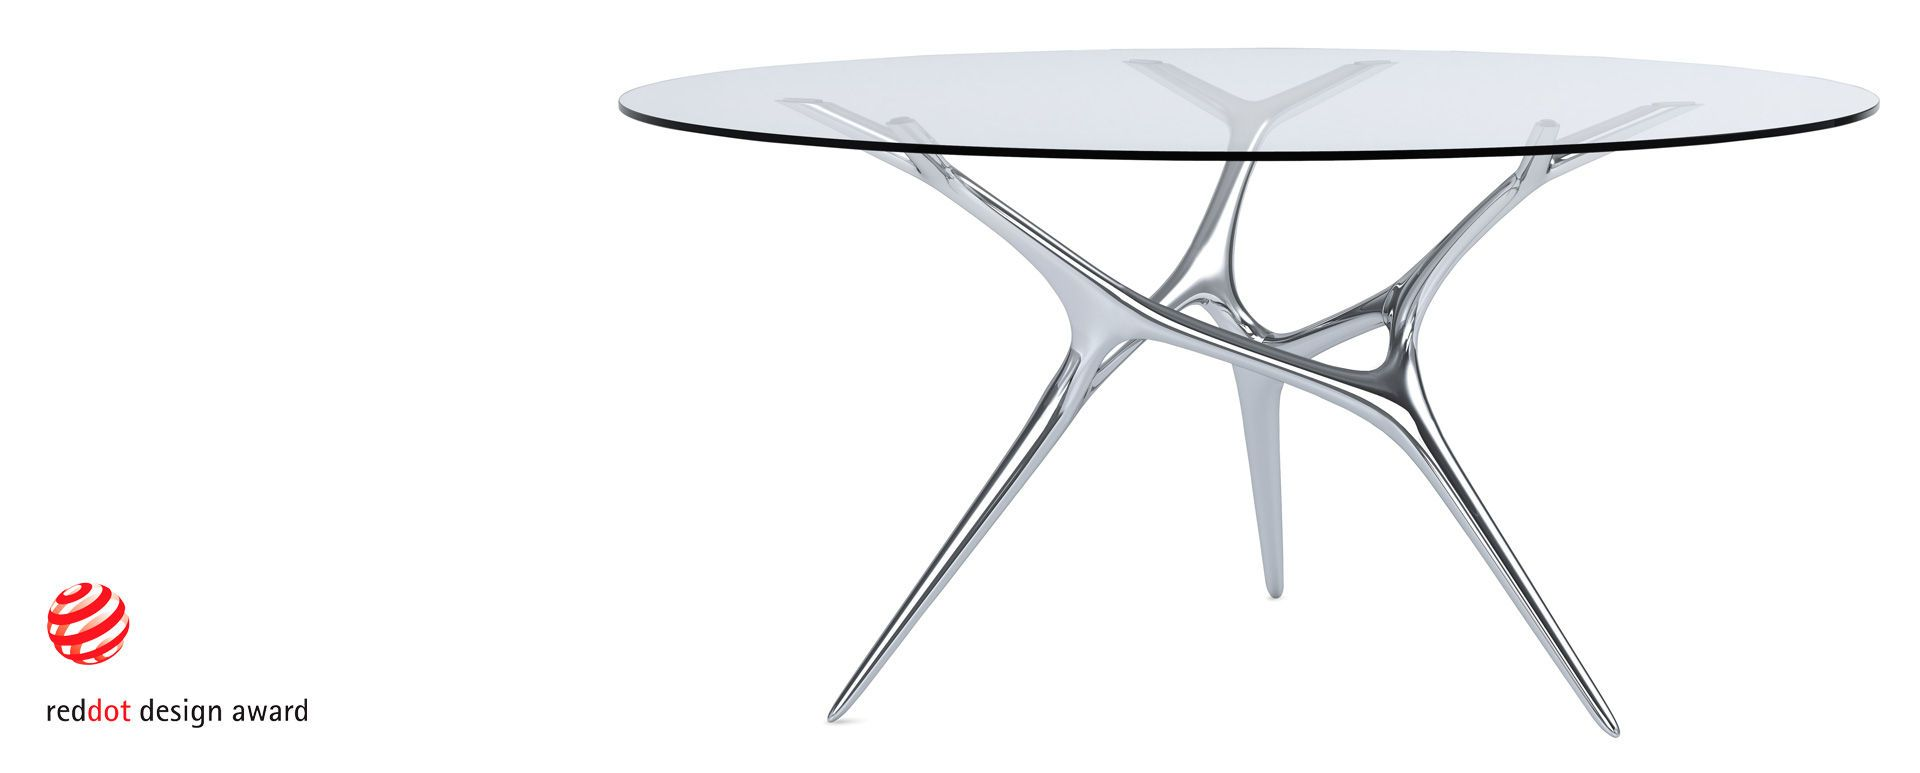 The design of the E-volved table, by the German designer Timothy ...